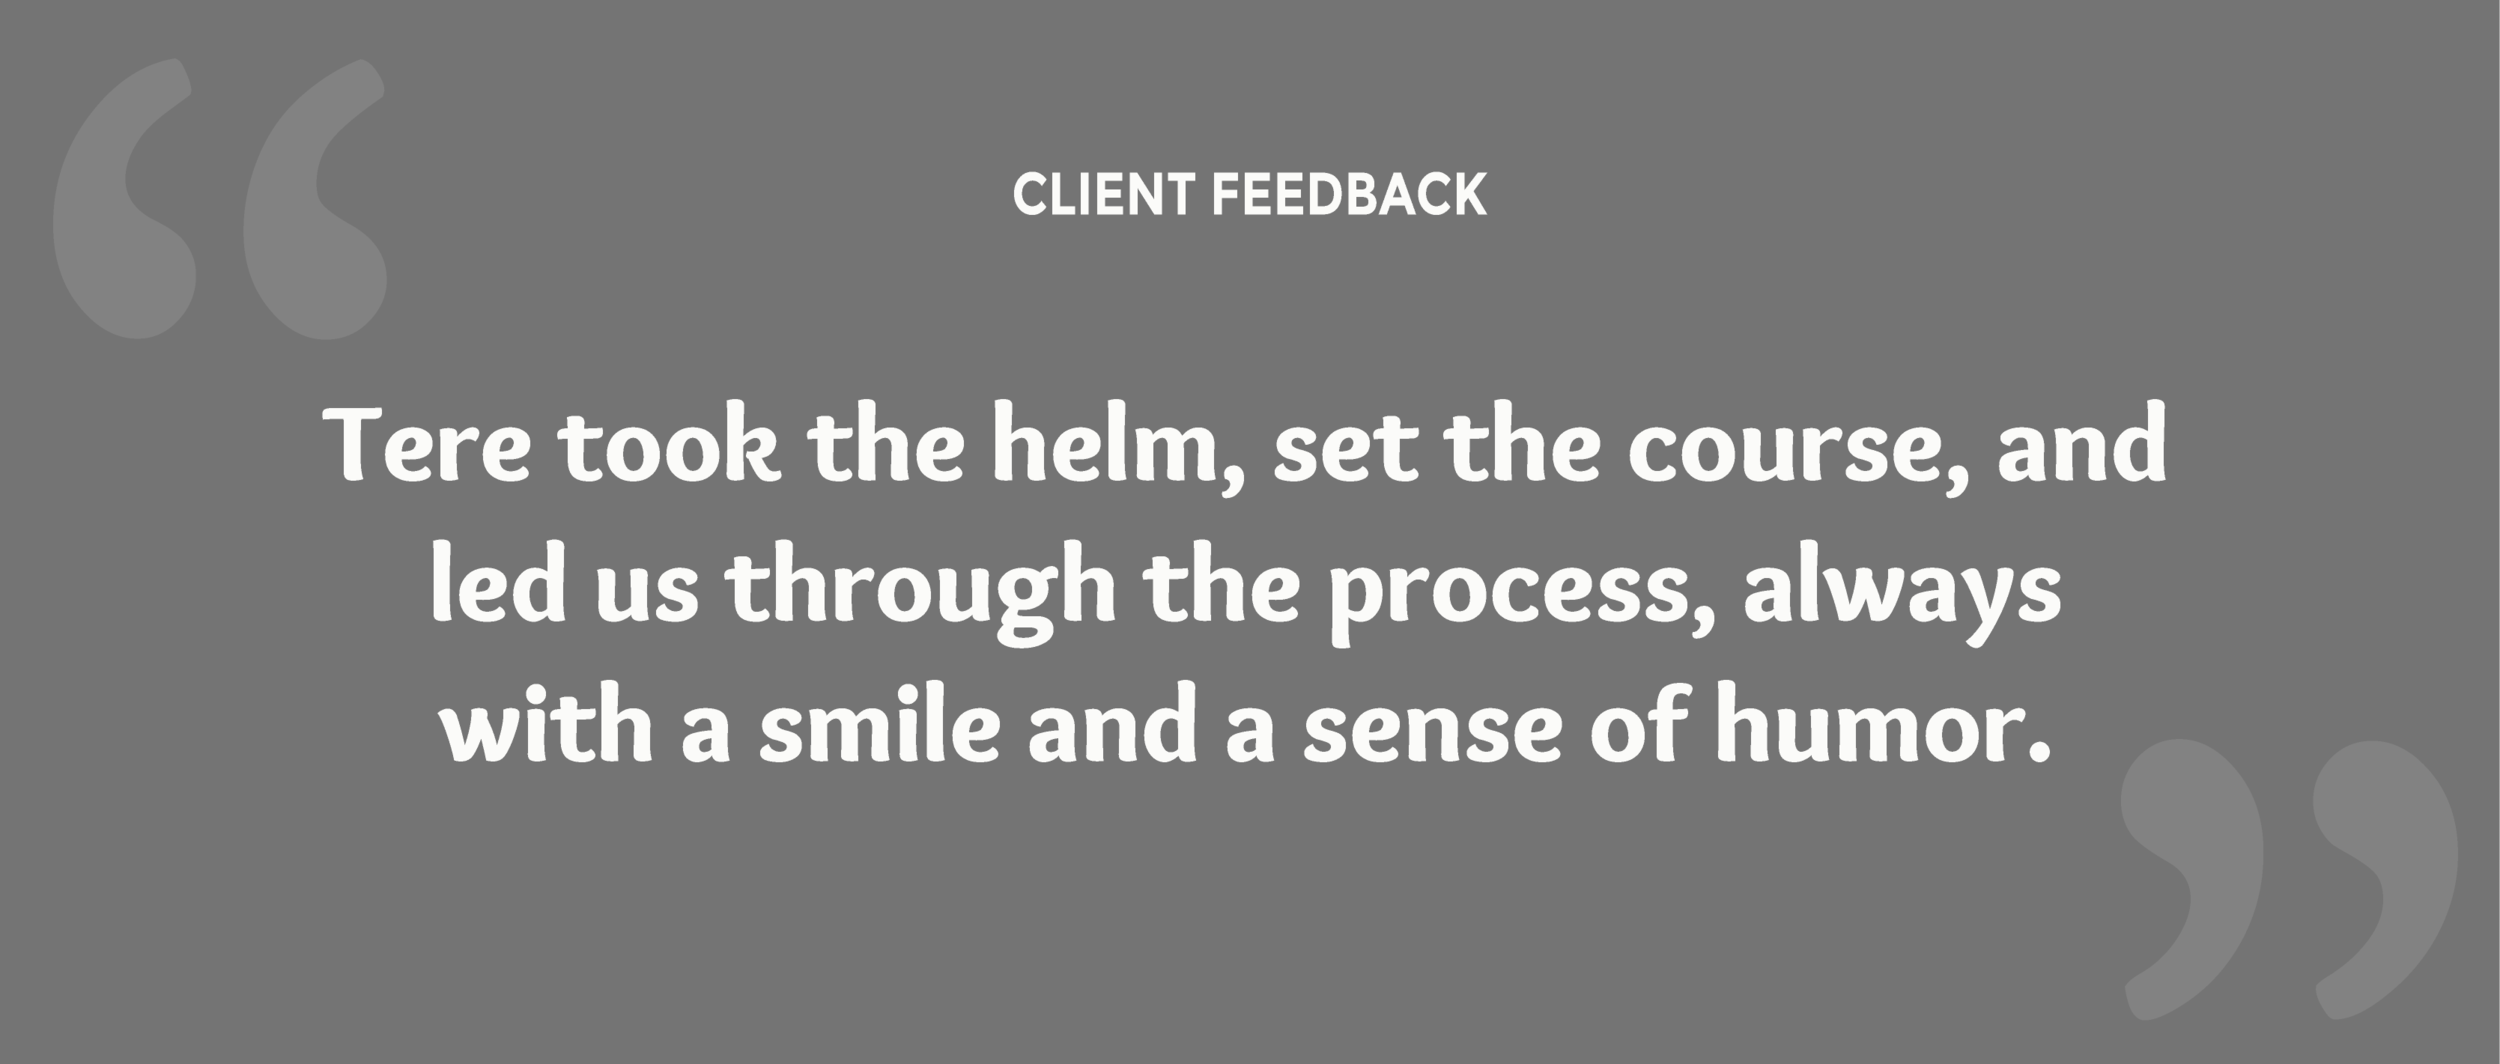 about-client-feedback2.png